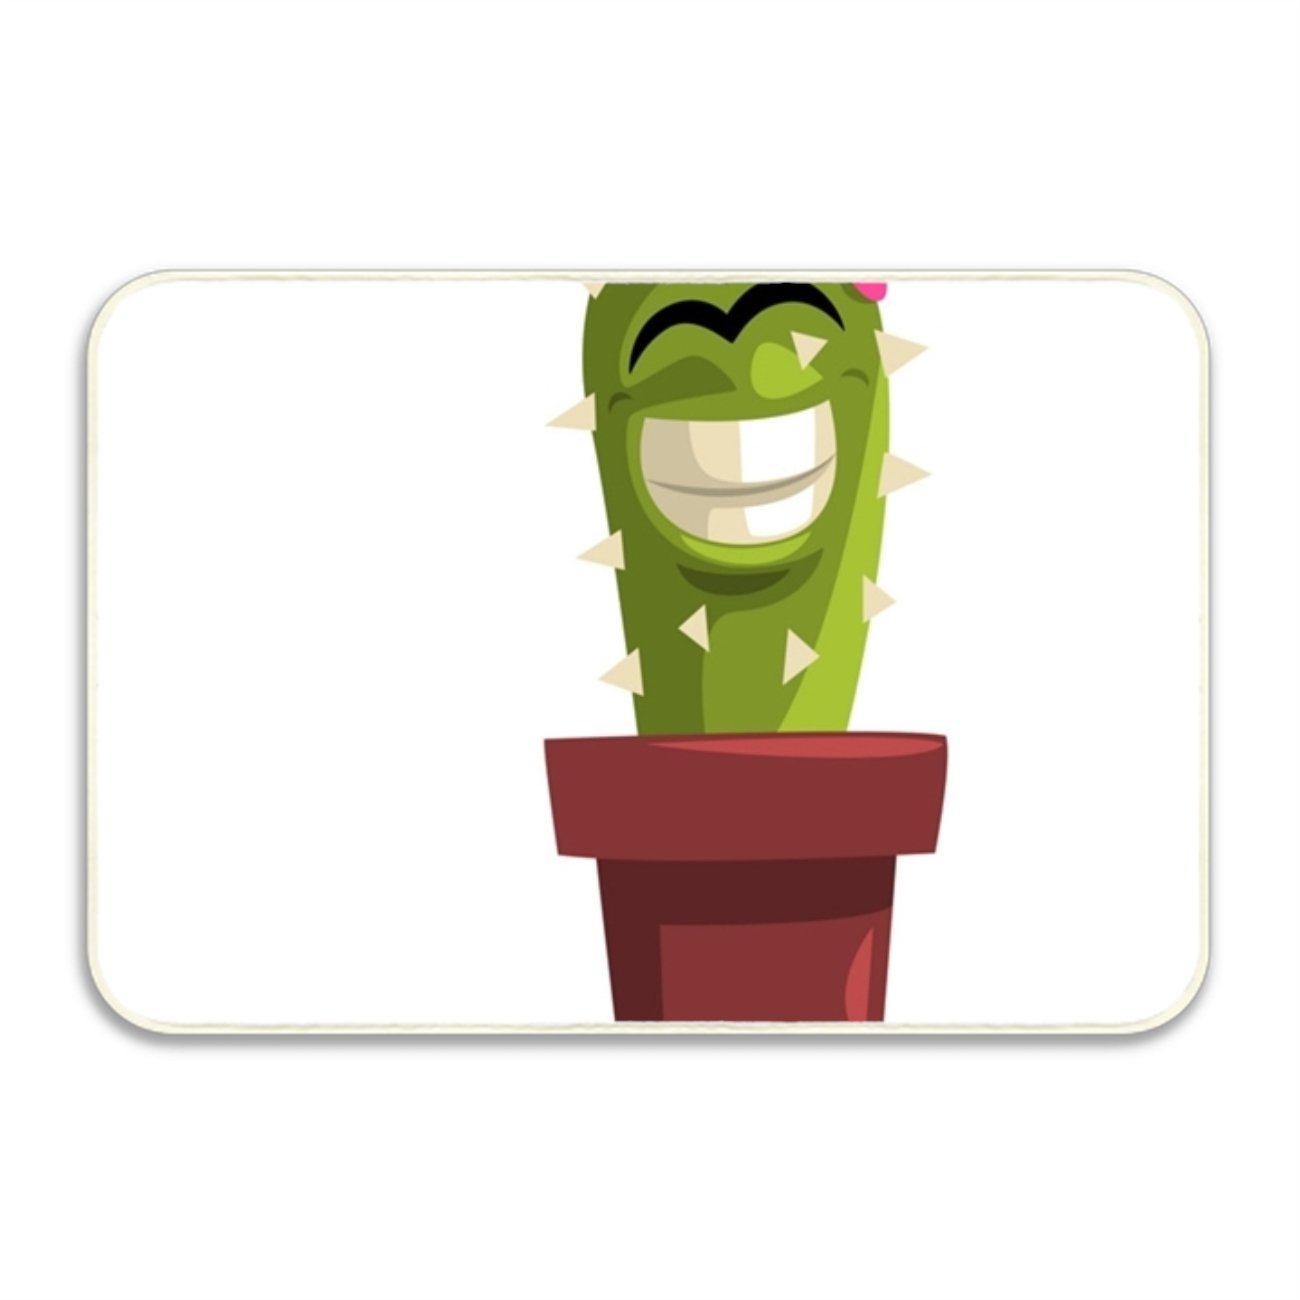 WYFG Environmentally Friendly Welcome Mat Printed Happy Smiling Cactus For School